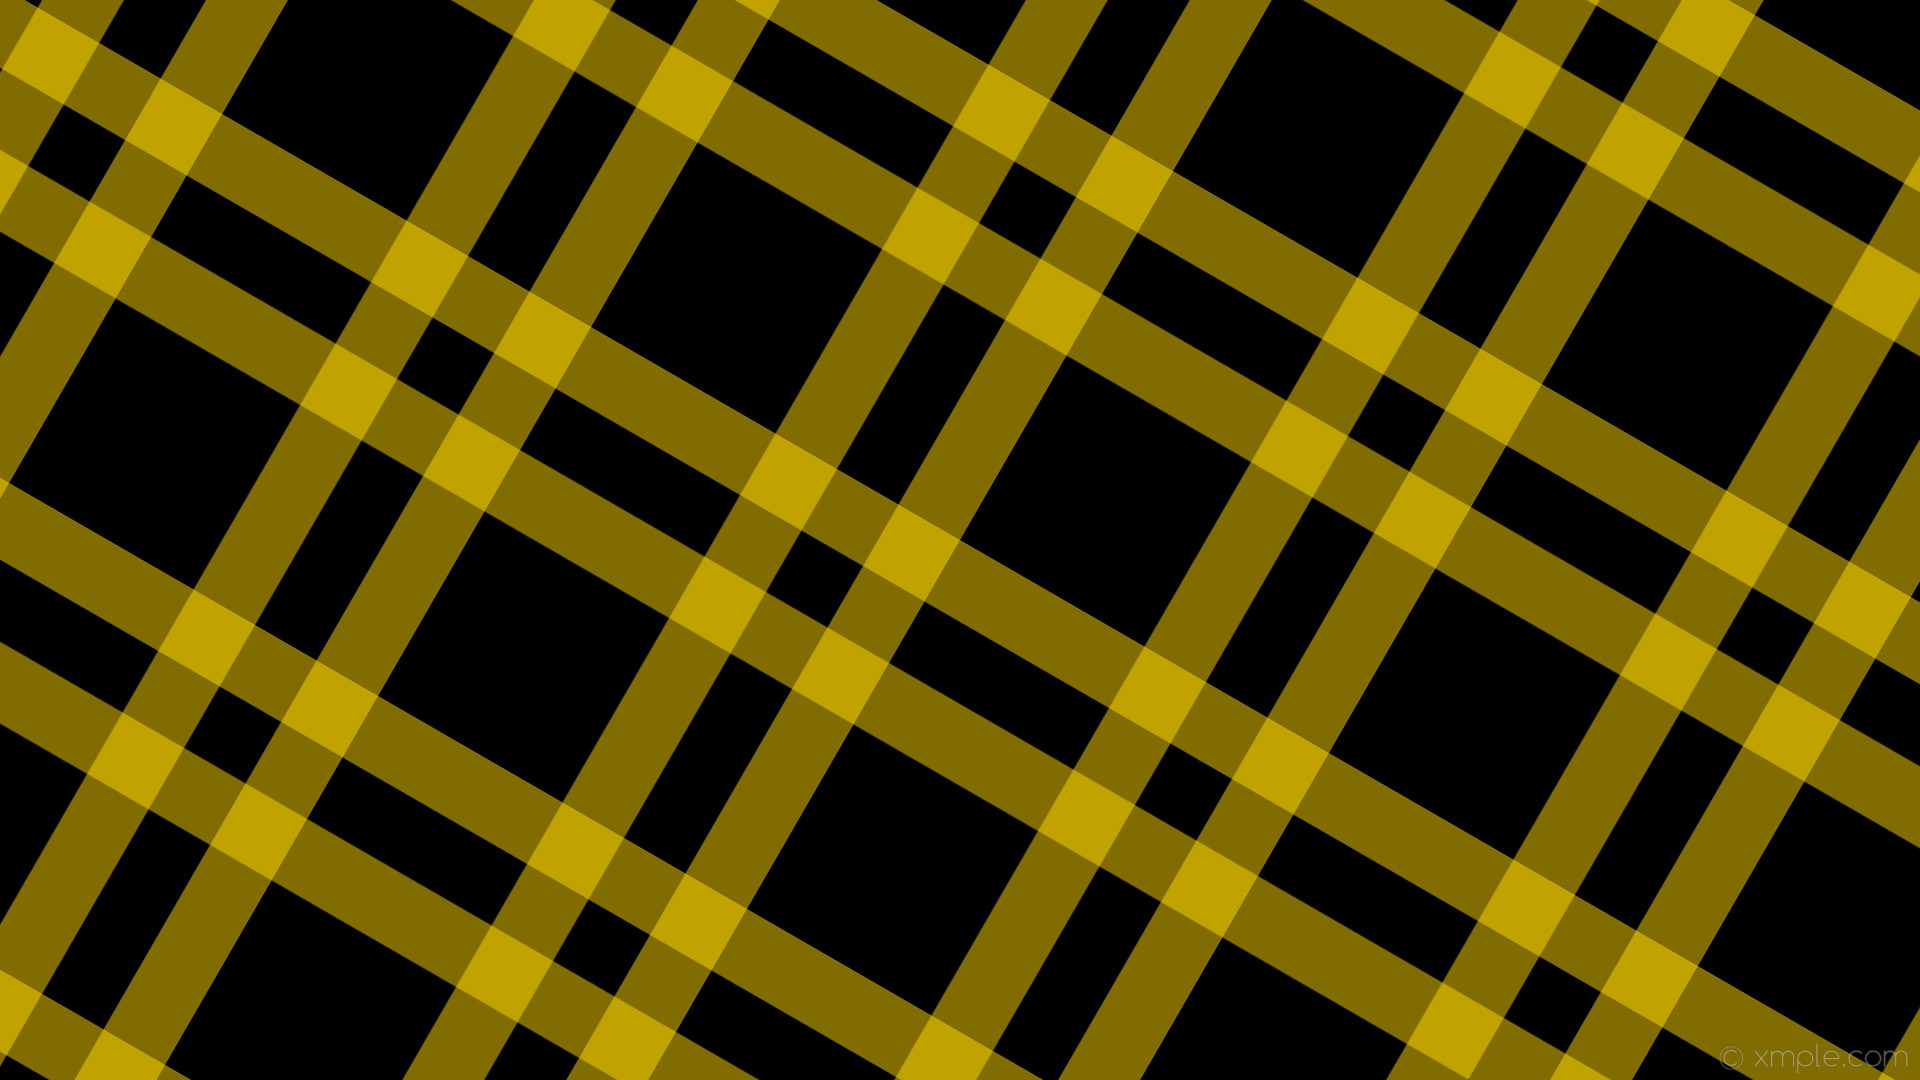 1920x1080 Download Yellow And Black Striped Wallpaper Gallery